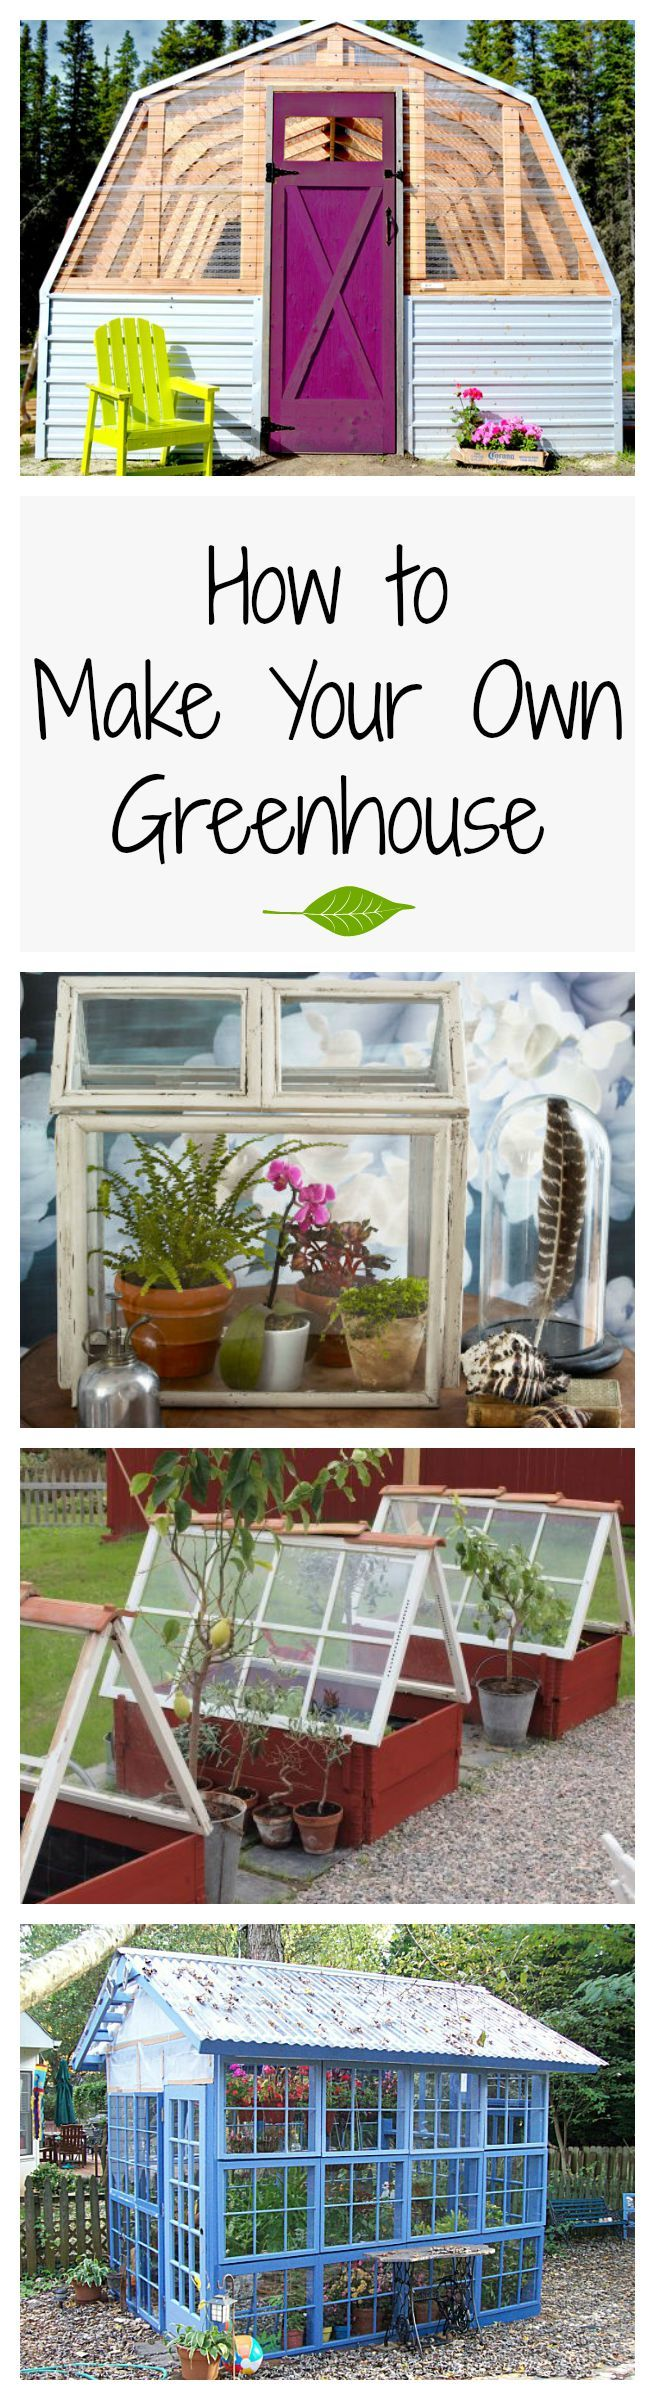 No matter the season, greenhouses are a gorgeous backyard addition. Plus, you can grow your own produce.